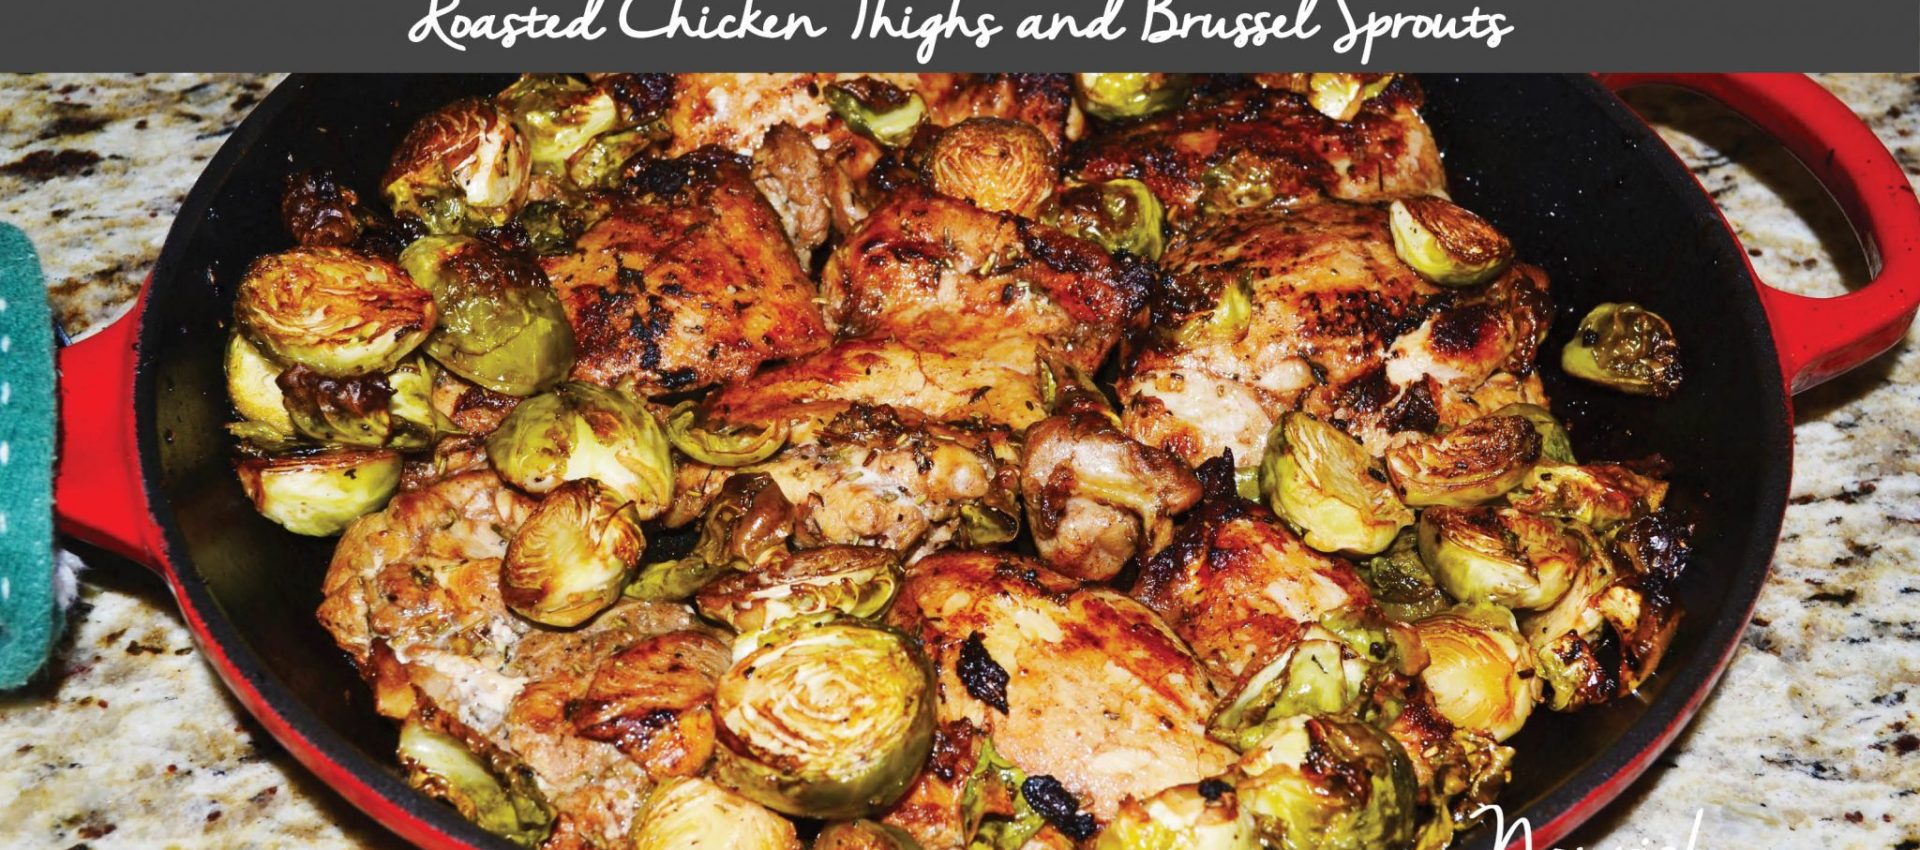 Balsamic Chicken Thighs and Brussels Sprouts